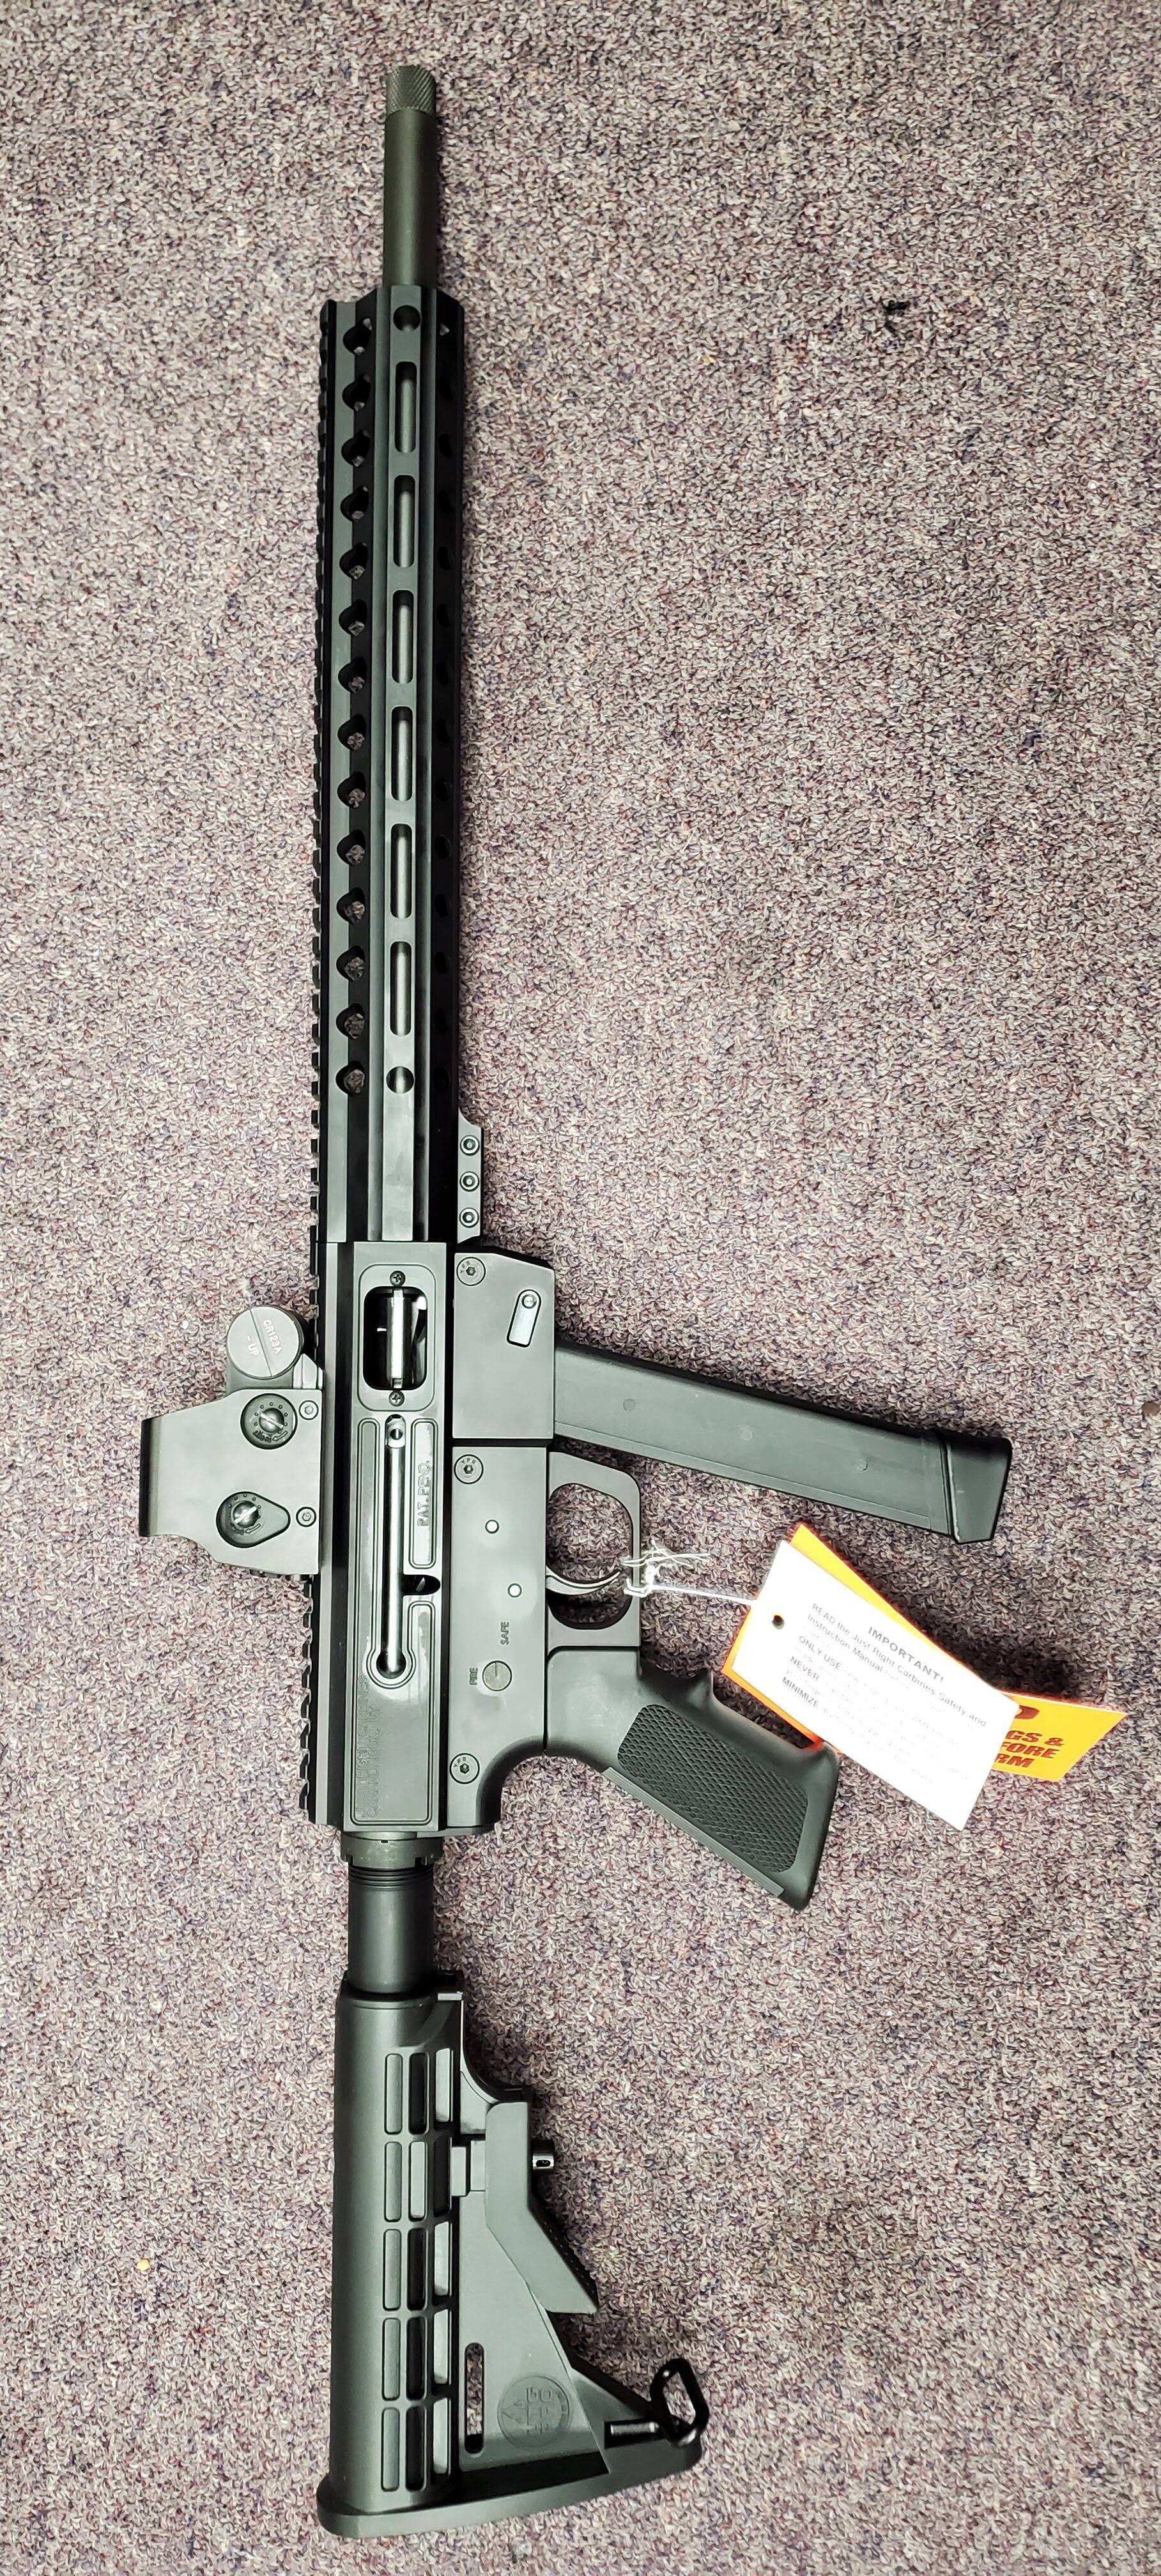 Image of JUST RIGHT CARBINE Full package Just Right Carbine Gen 3 9mm MLok Rail